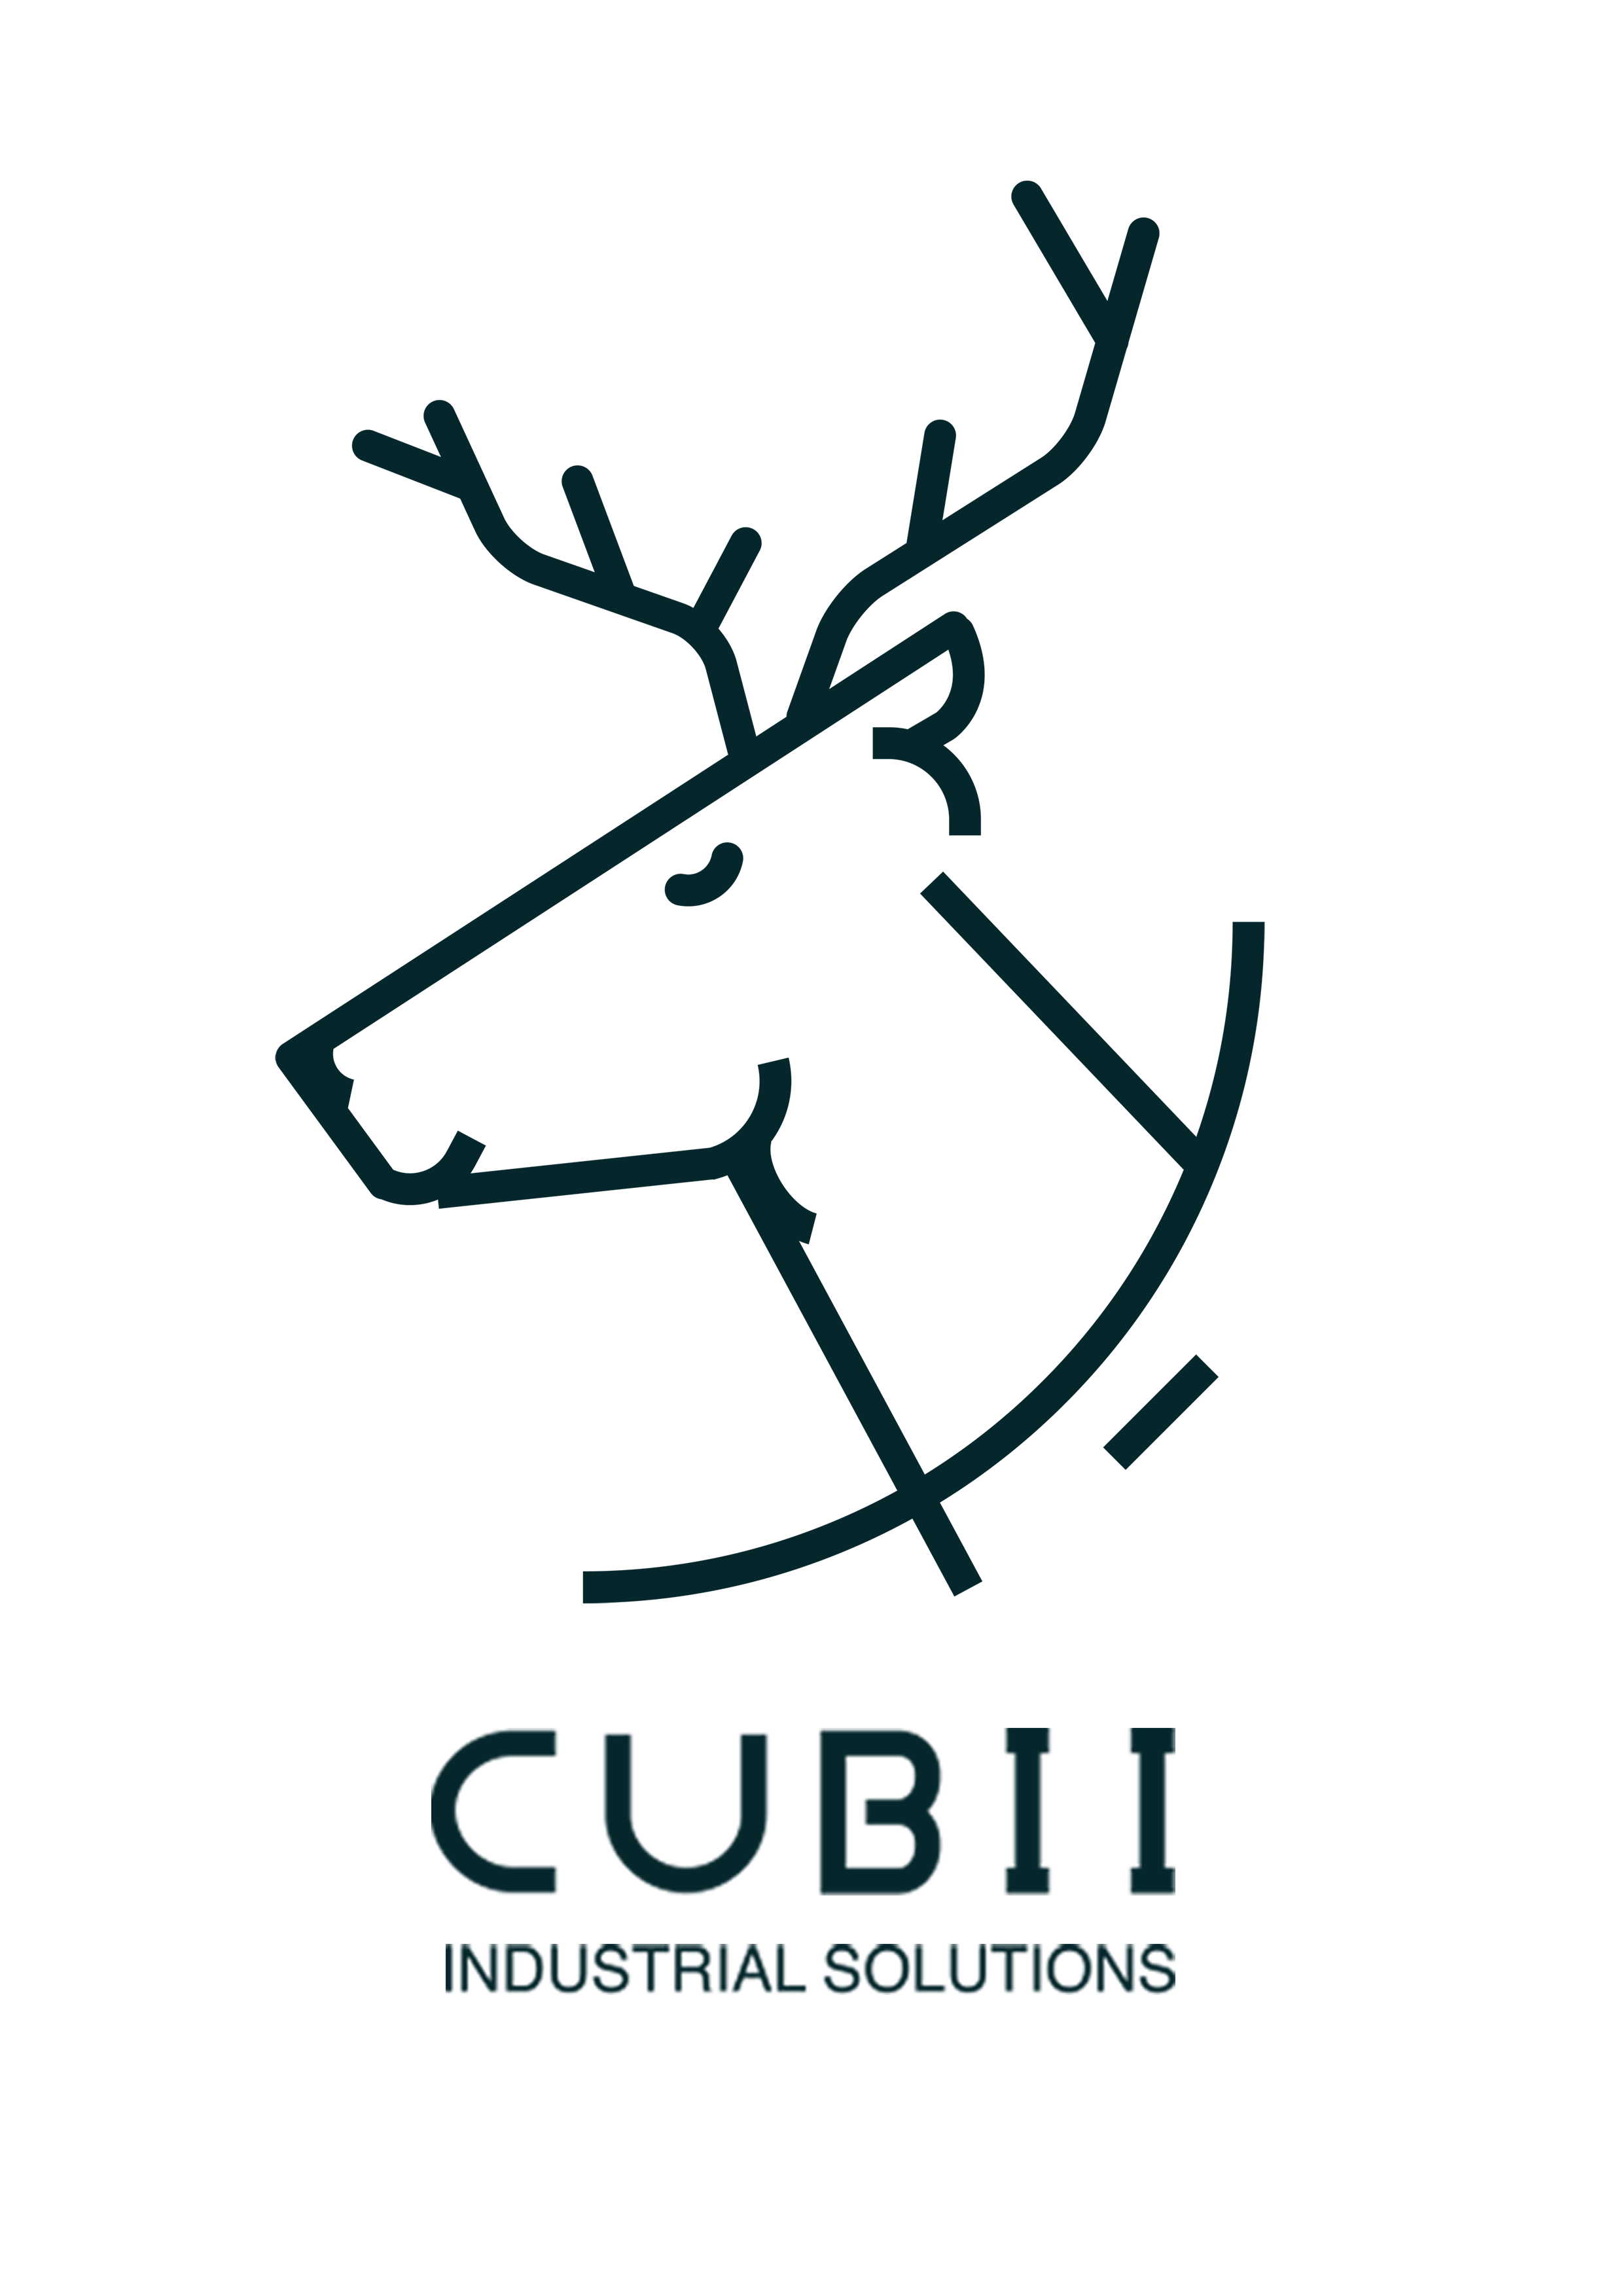 CUBII Industrial Solutions